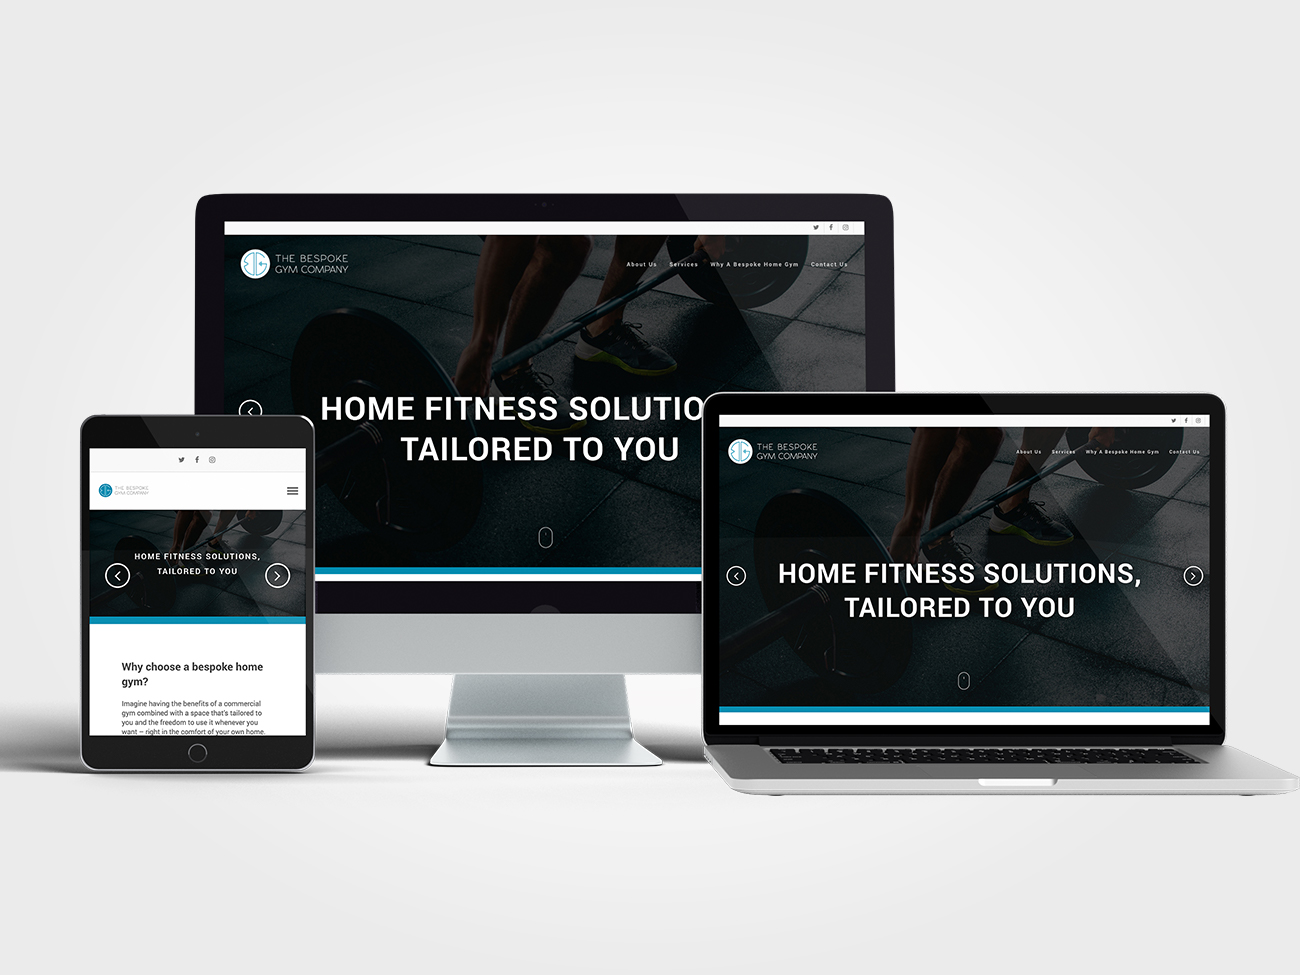 The Bespoke Gym Company Website on multiple devices